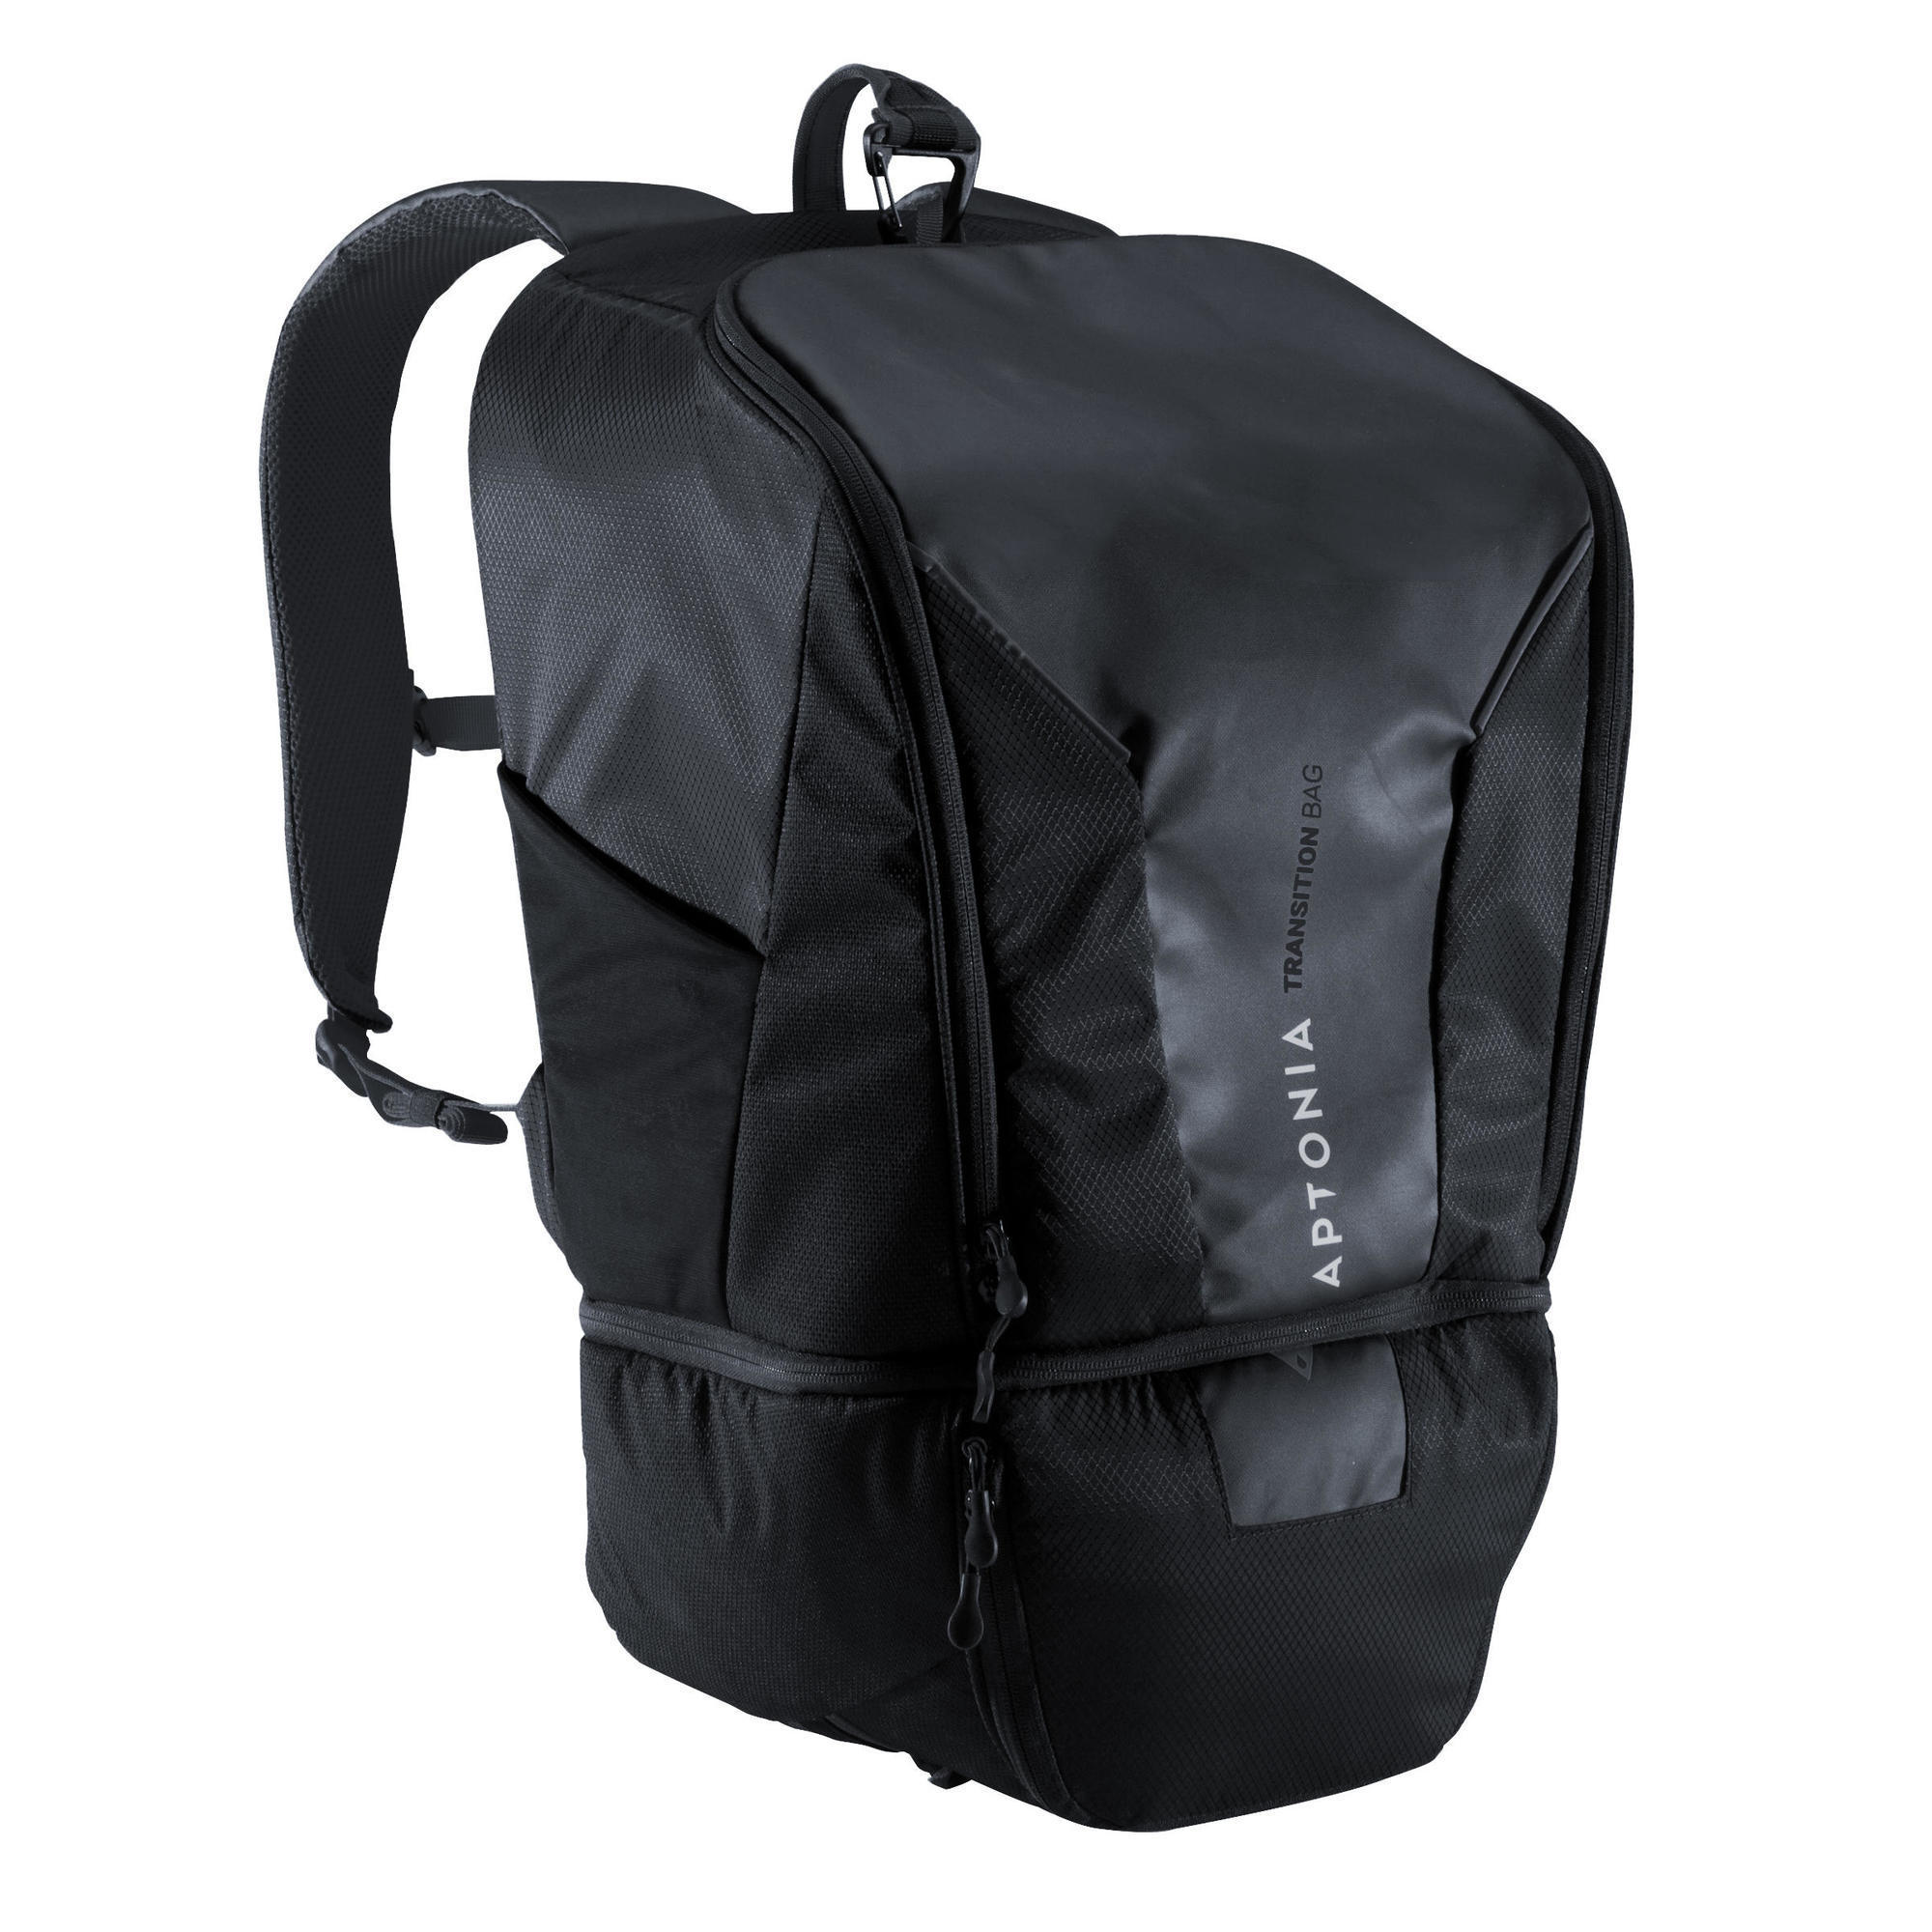 Aptonia Transition bag triatlon Aptonia 35 l